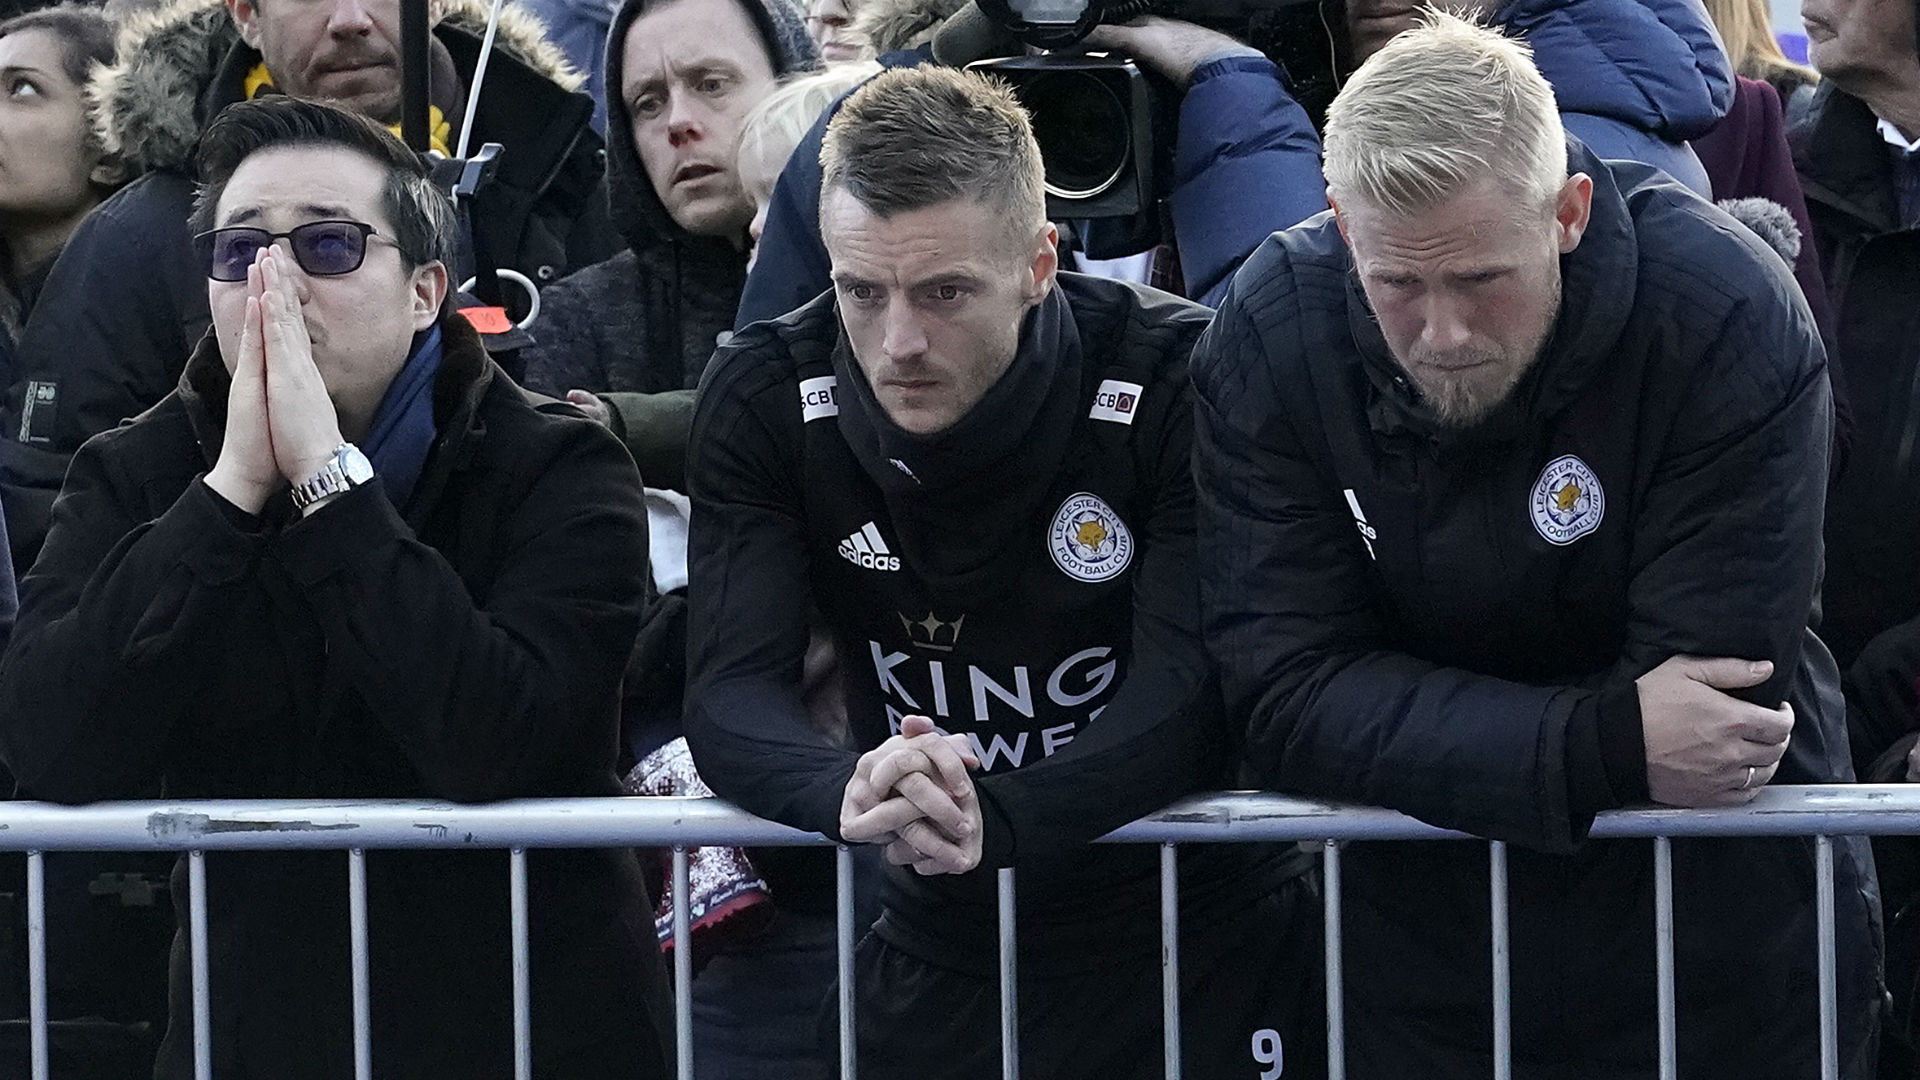 The scenes before Cardiff City v Leicester City kicked off were heartbreaking